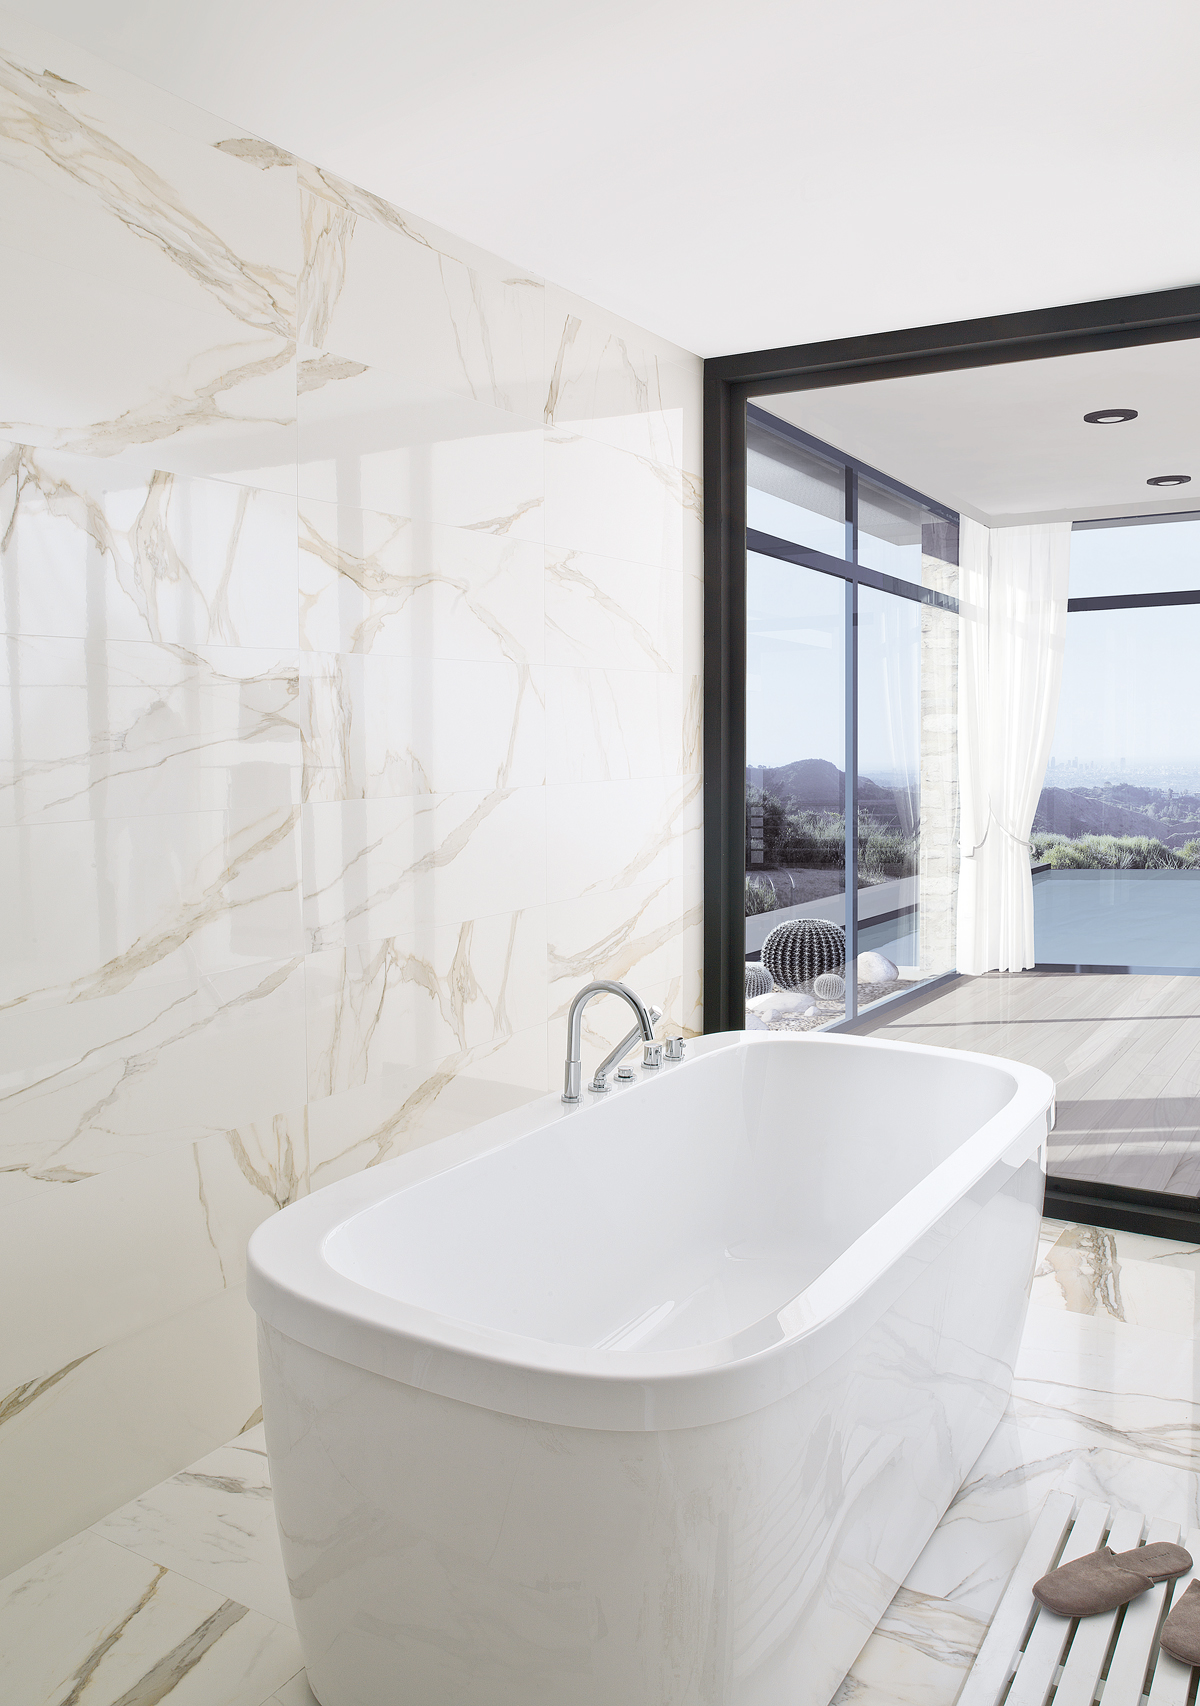 Porcelanosa calacata for Faience salle de bain nature